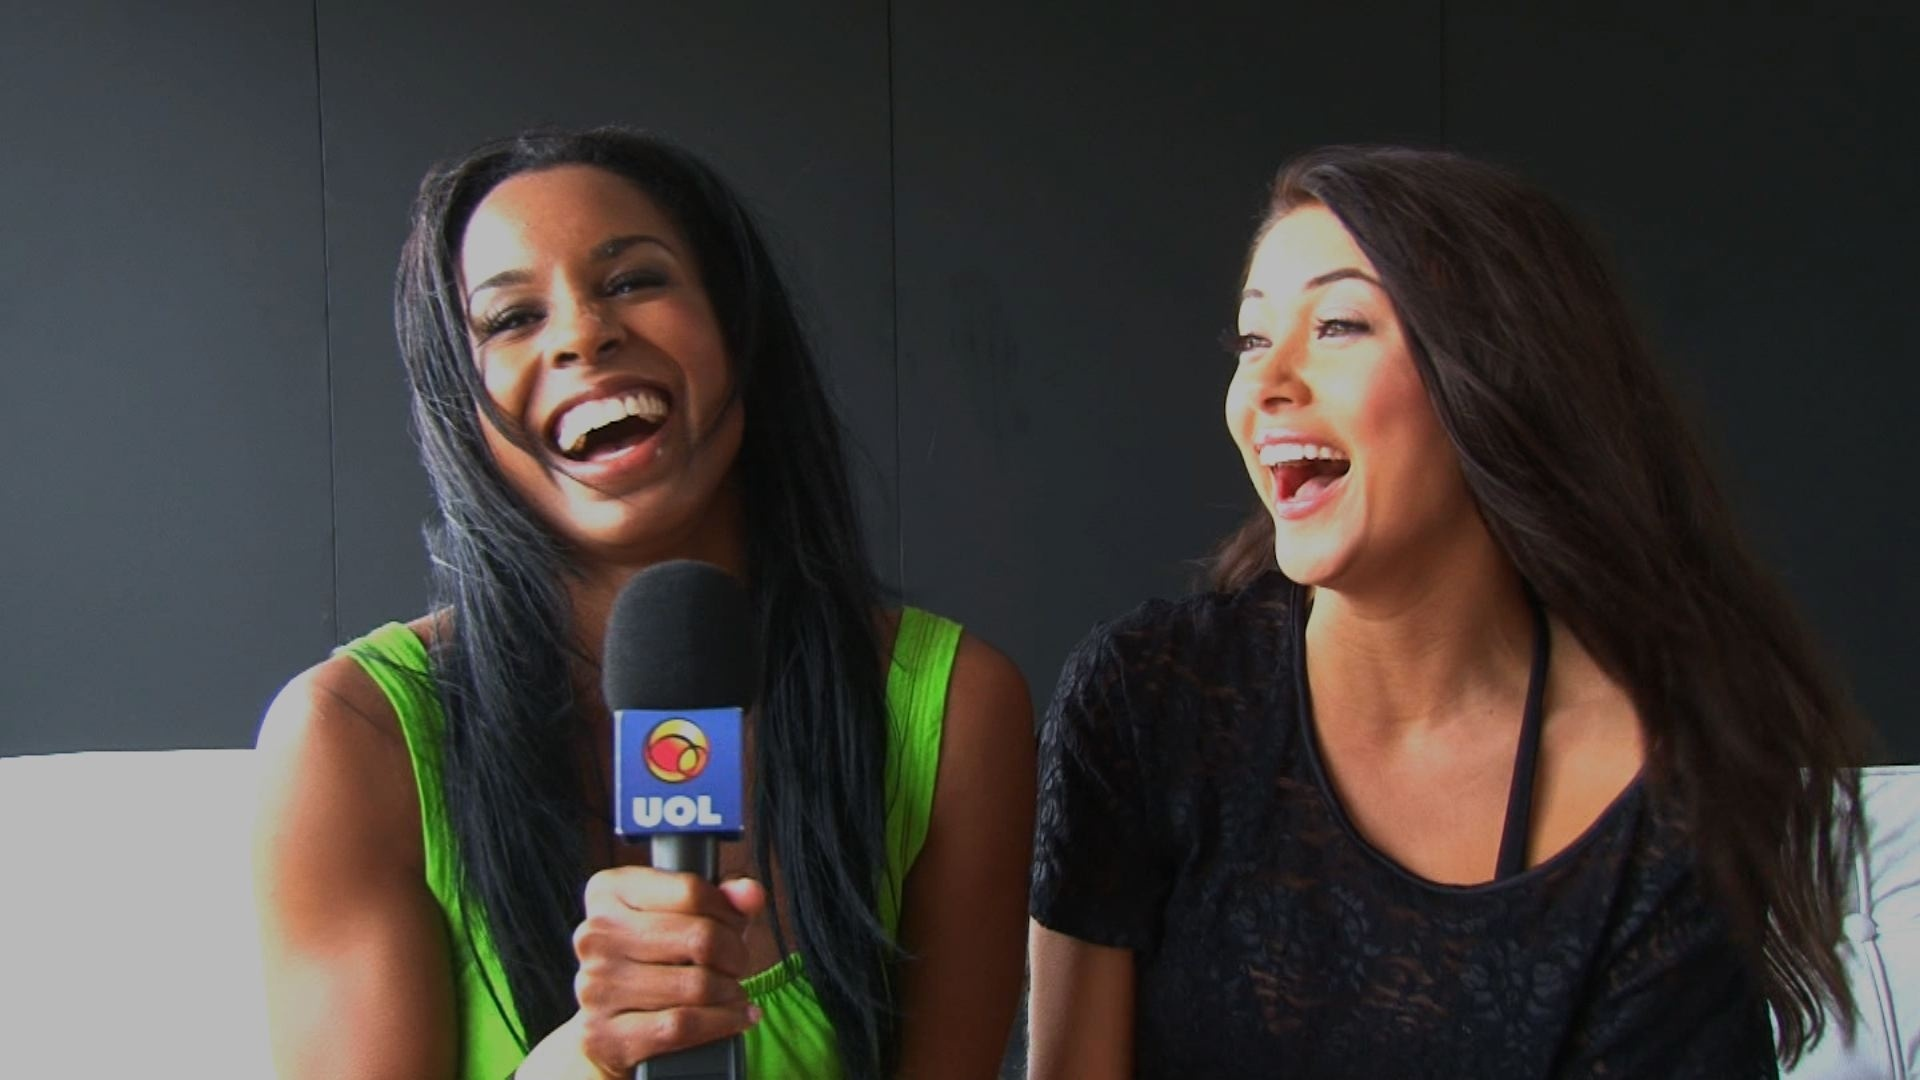 Ring girls Chandella Powell e Arianny Celeste so entrevistadas pelo UOL